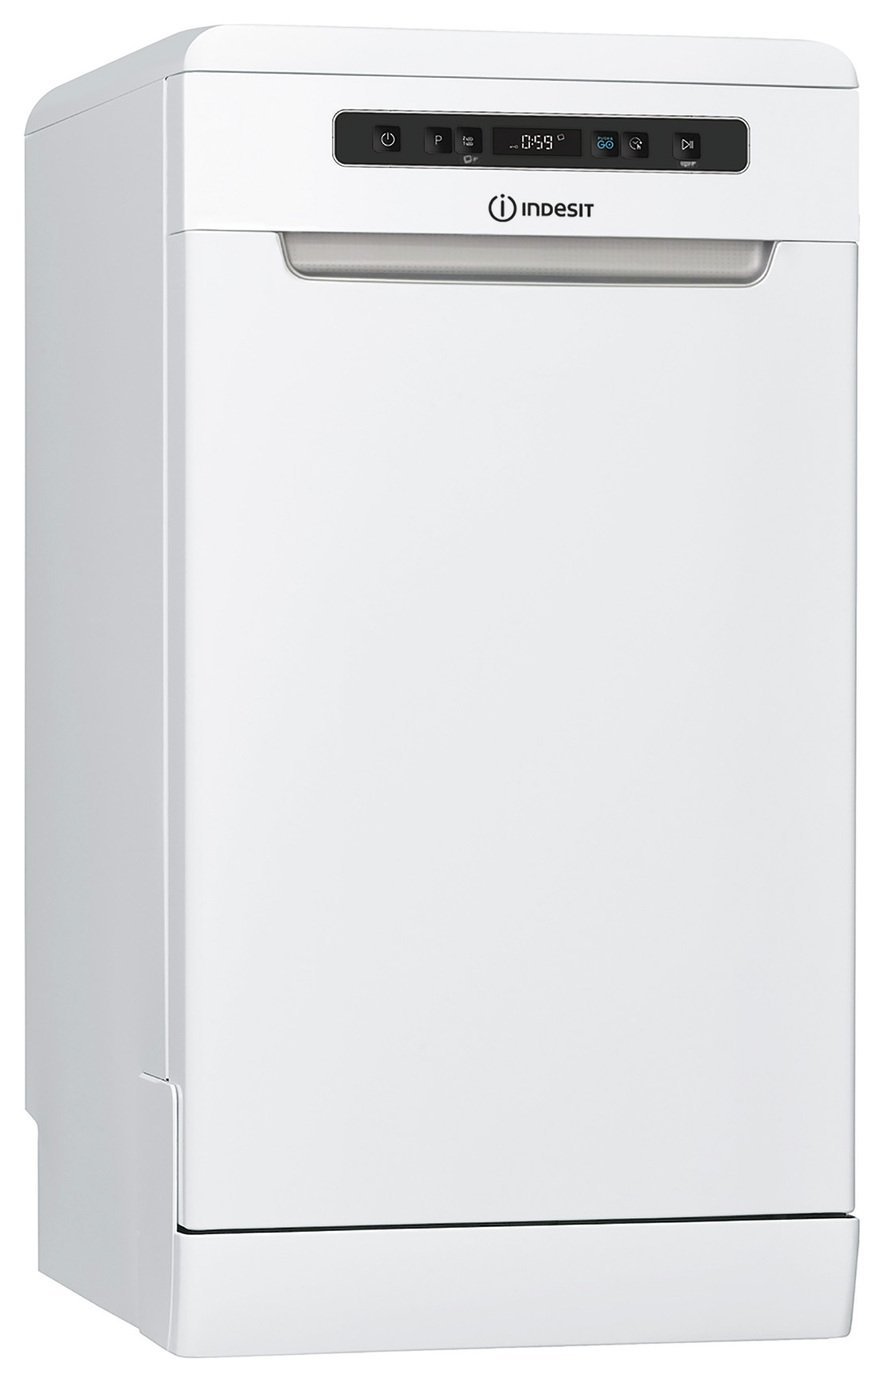 Indesit DSFO3T224ZUK Slimline Dishwasher - White